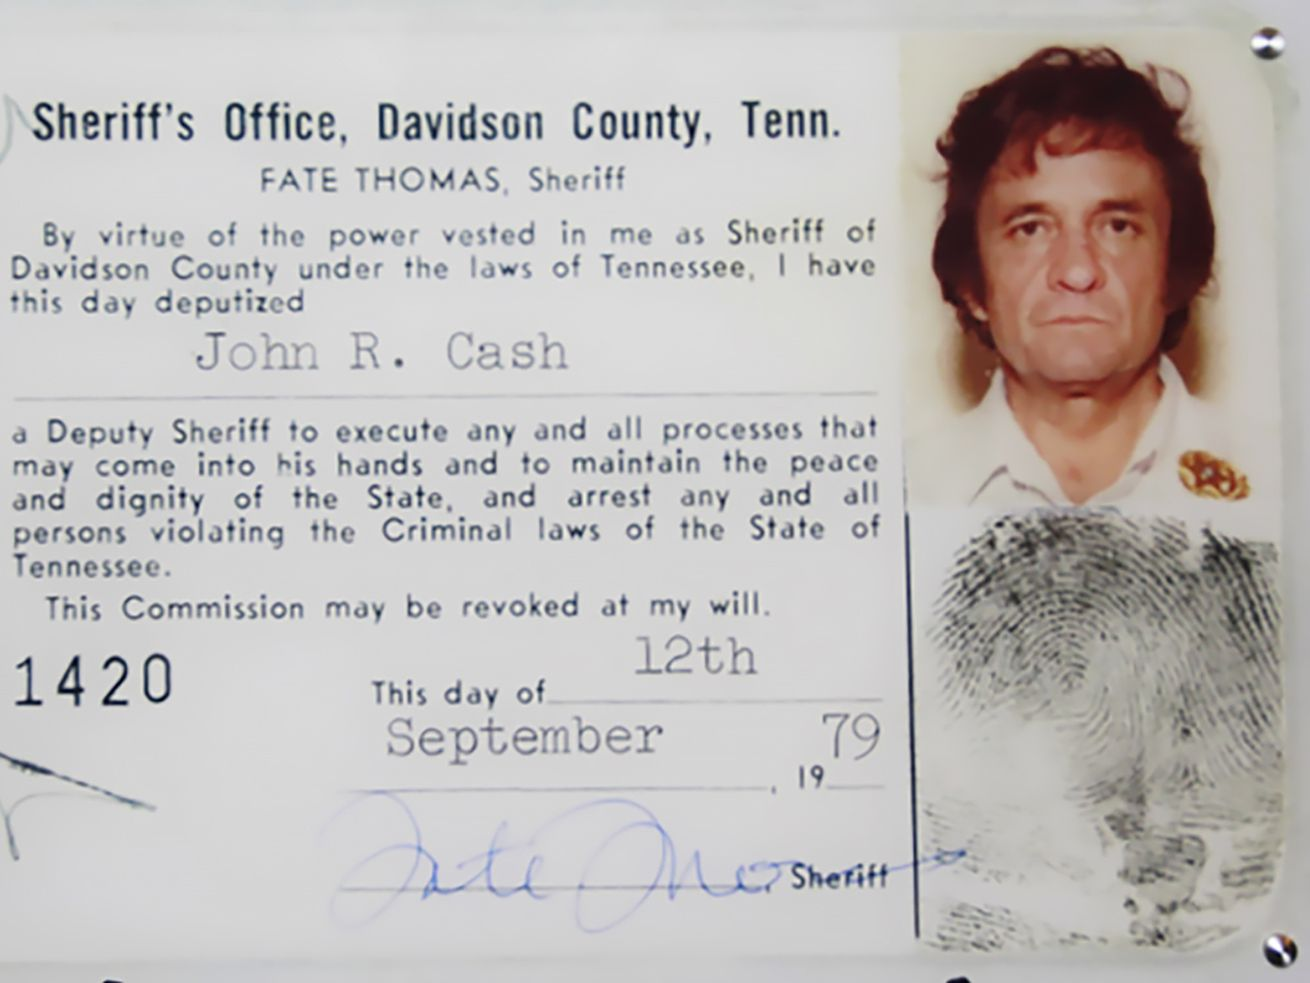 Shows Cash's Deputy Sheriff ID card.